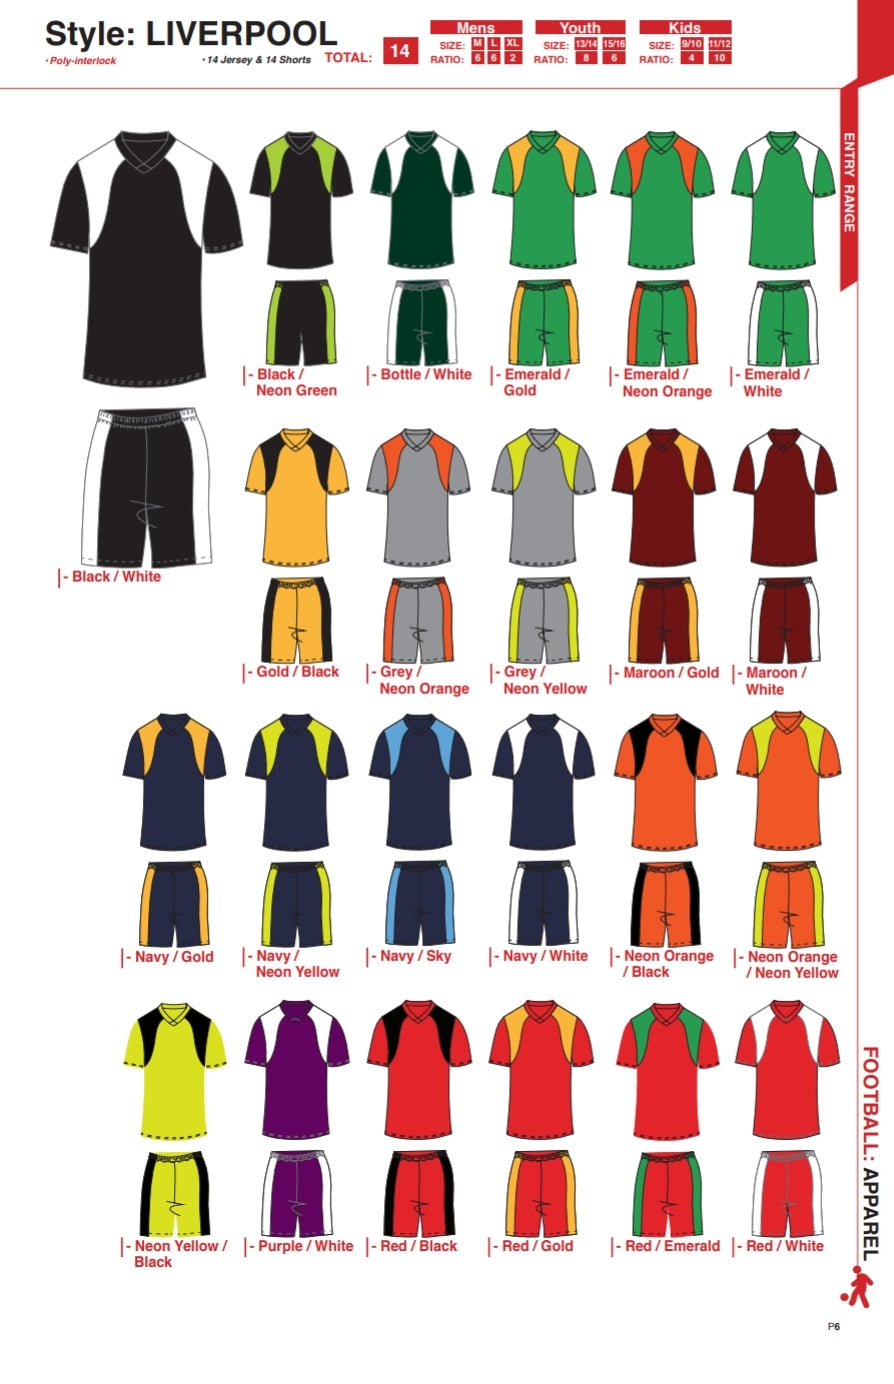 Soccer Kit Combo Basic Set - Liverpool Style Colour Chart A